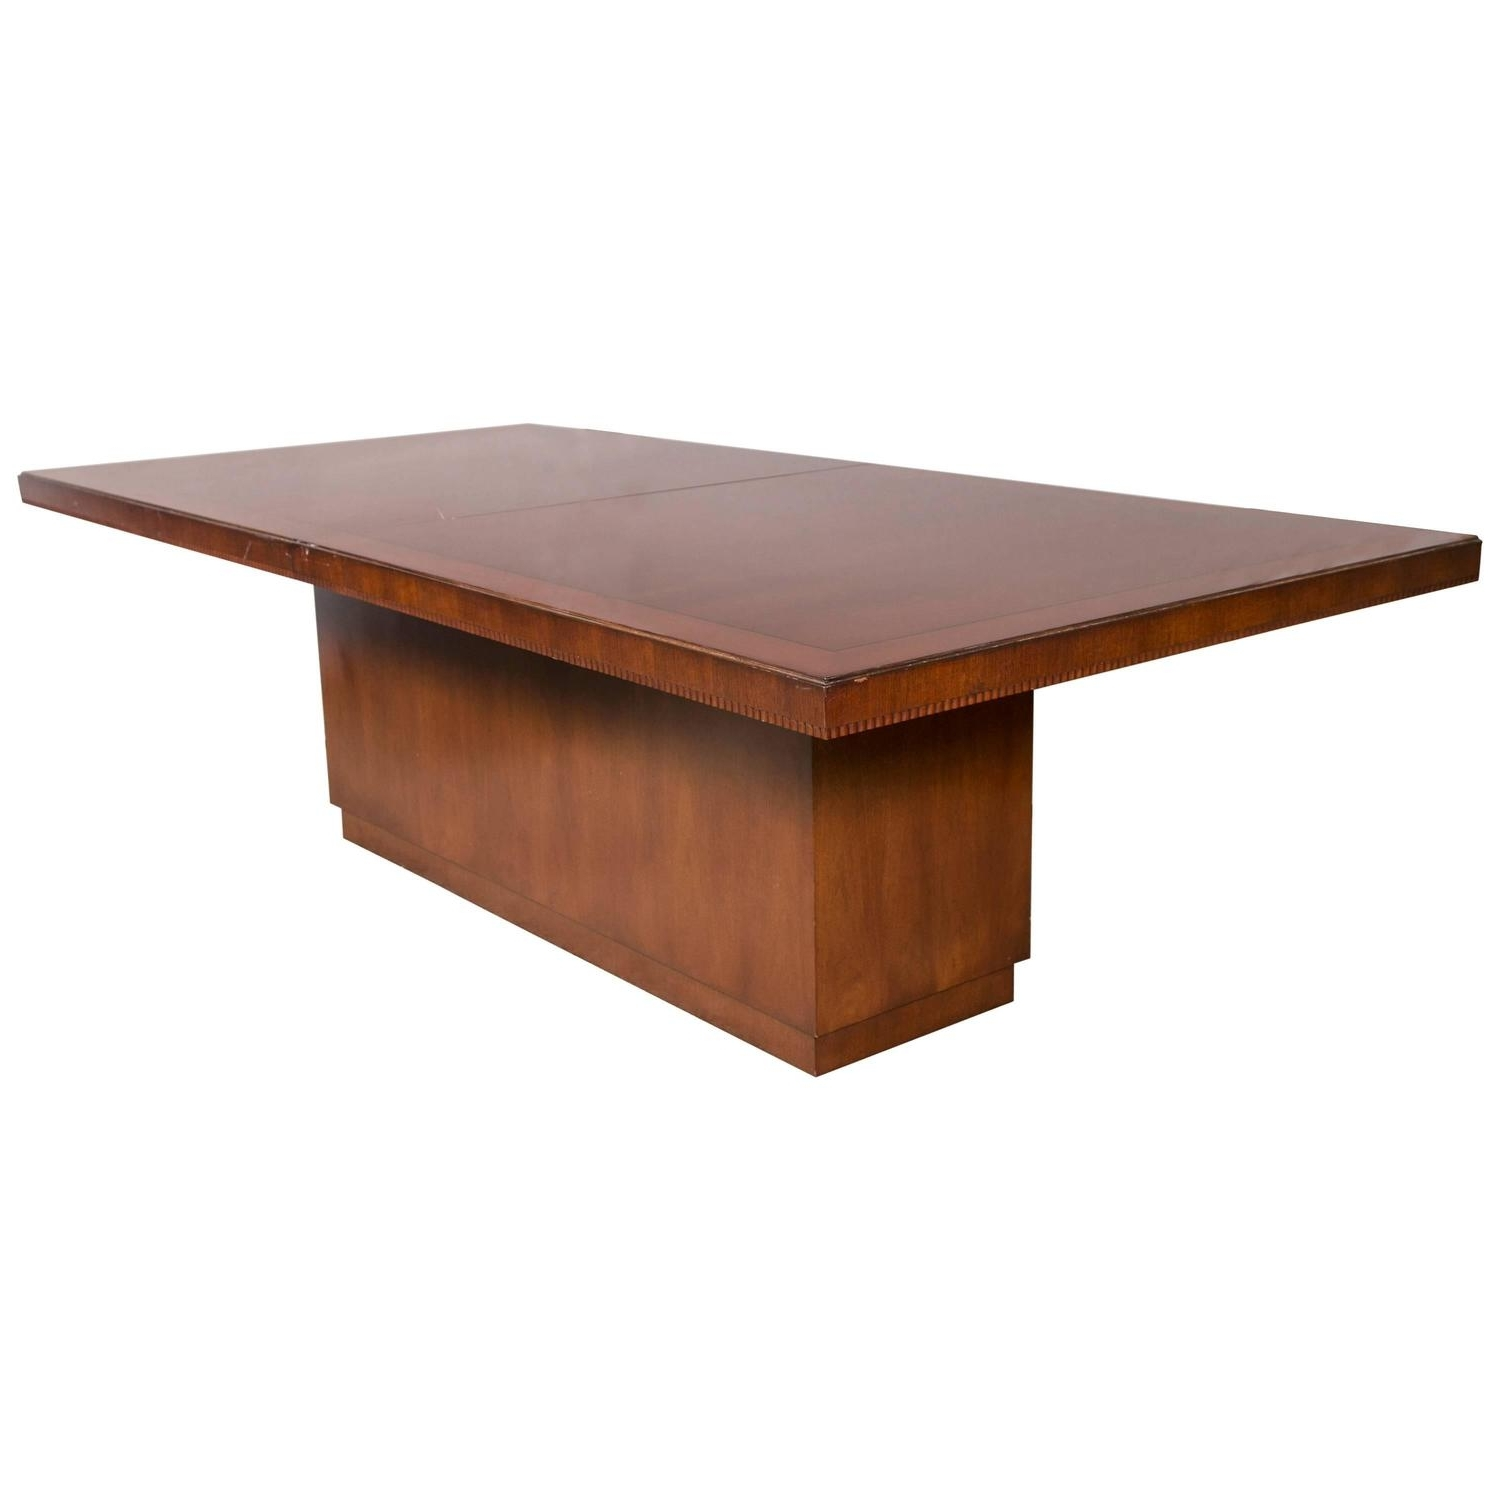 2017 Ralph Lauren Palaical Modern Hollywood Dining Table At 1Stdibs regarding Laurent Round Dining Tables